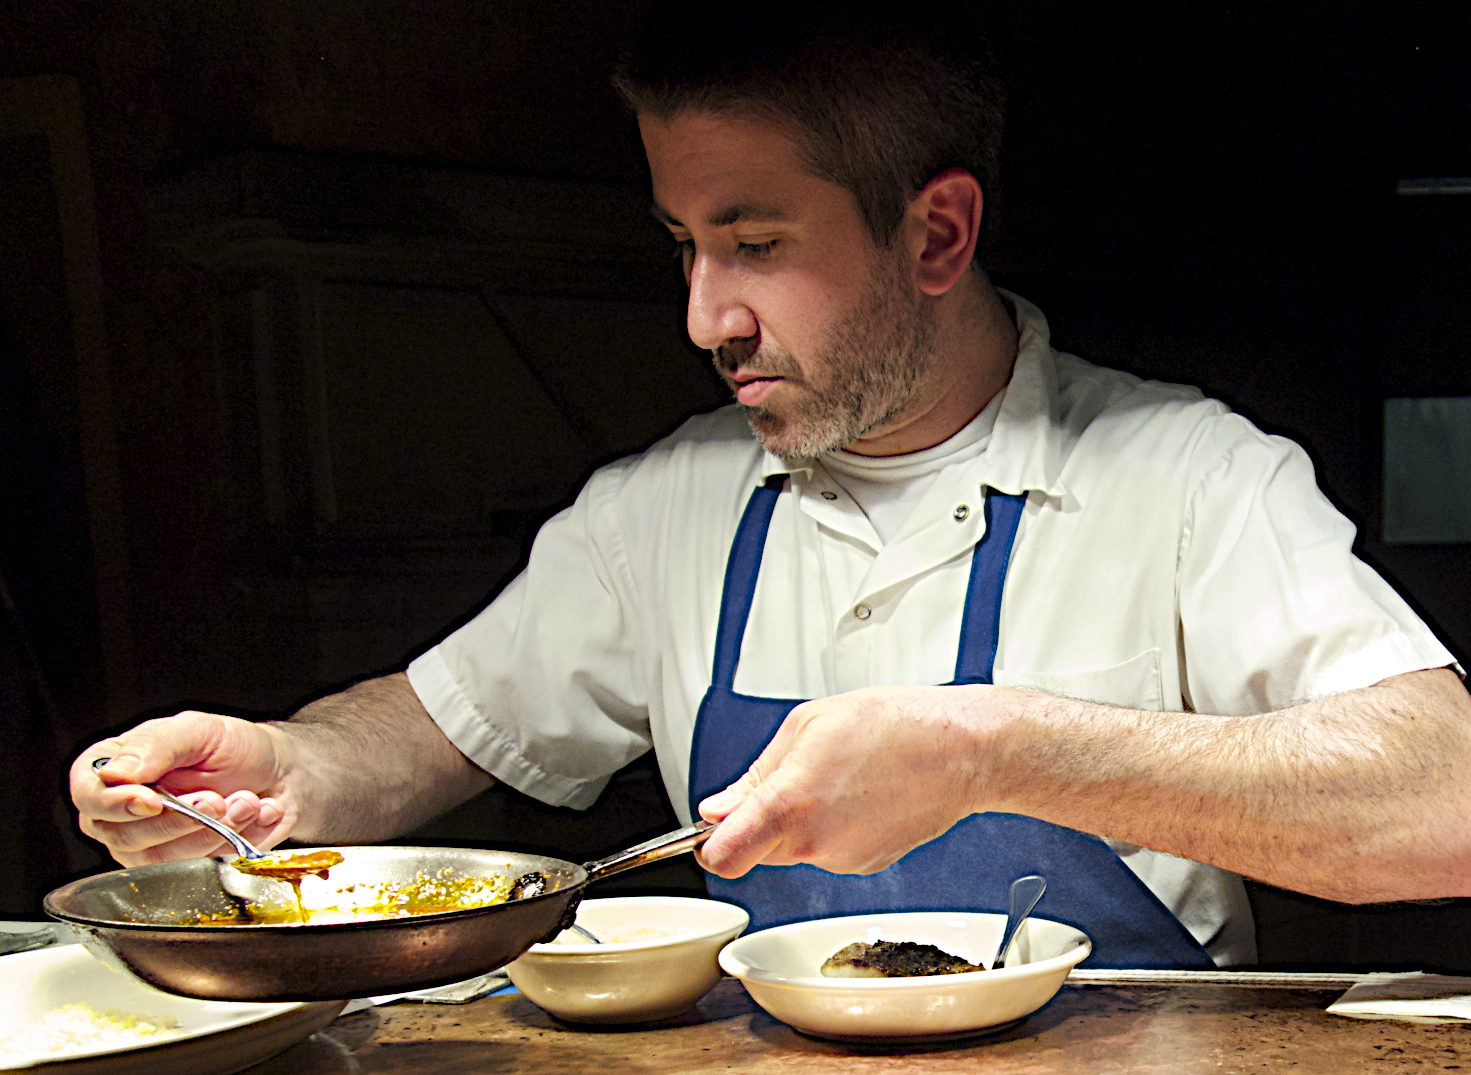 Chef Michael Solomonov cooking at Zahav Restaurant, Philadelphia